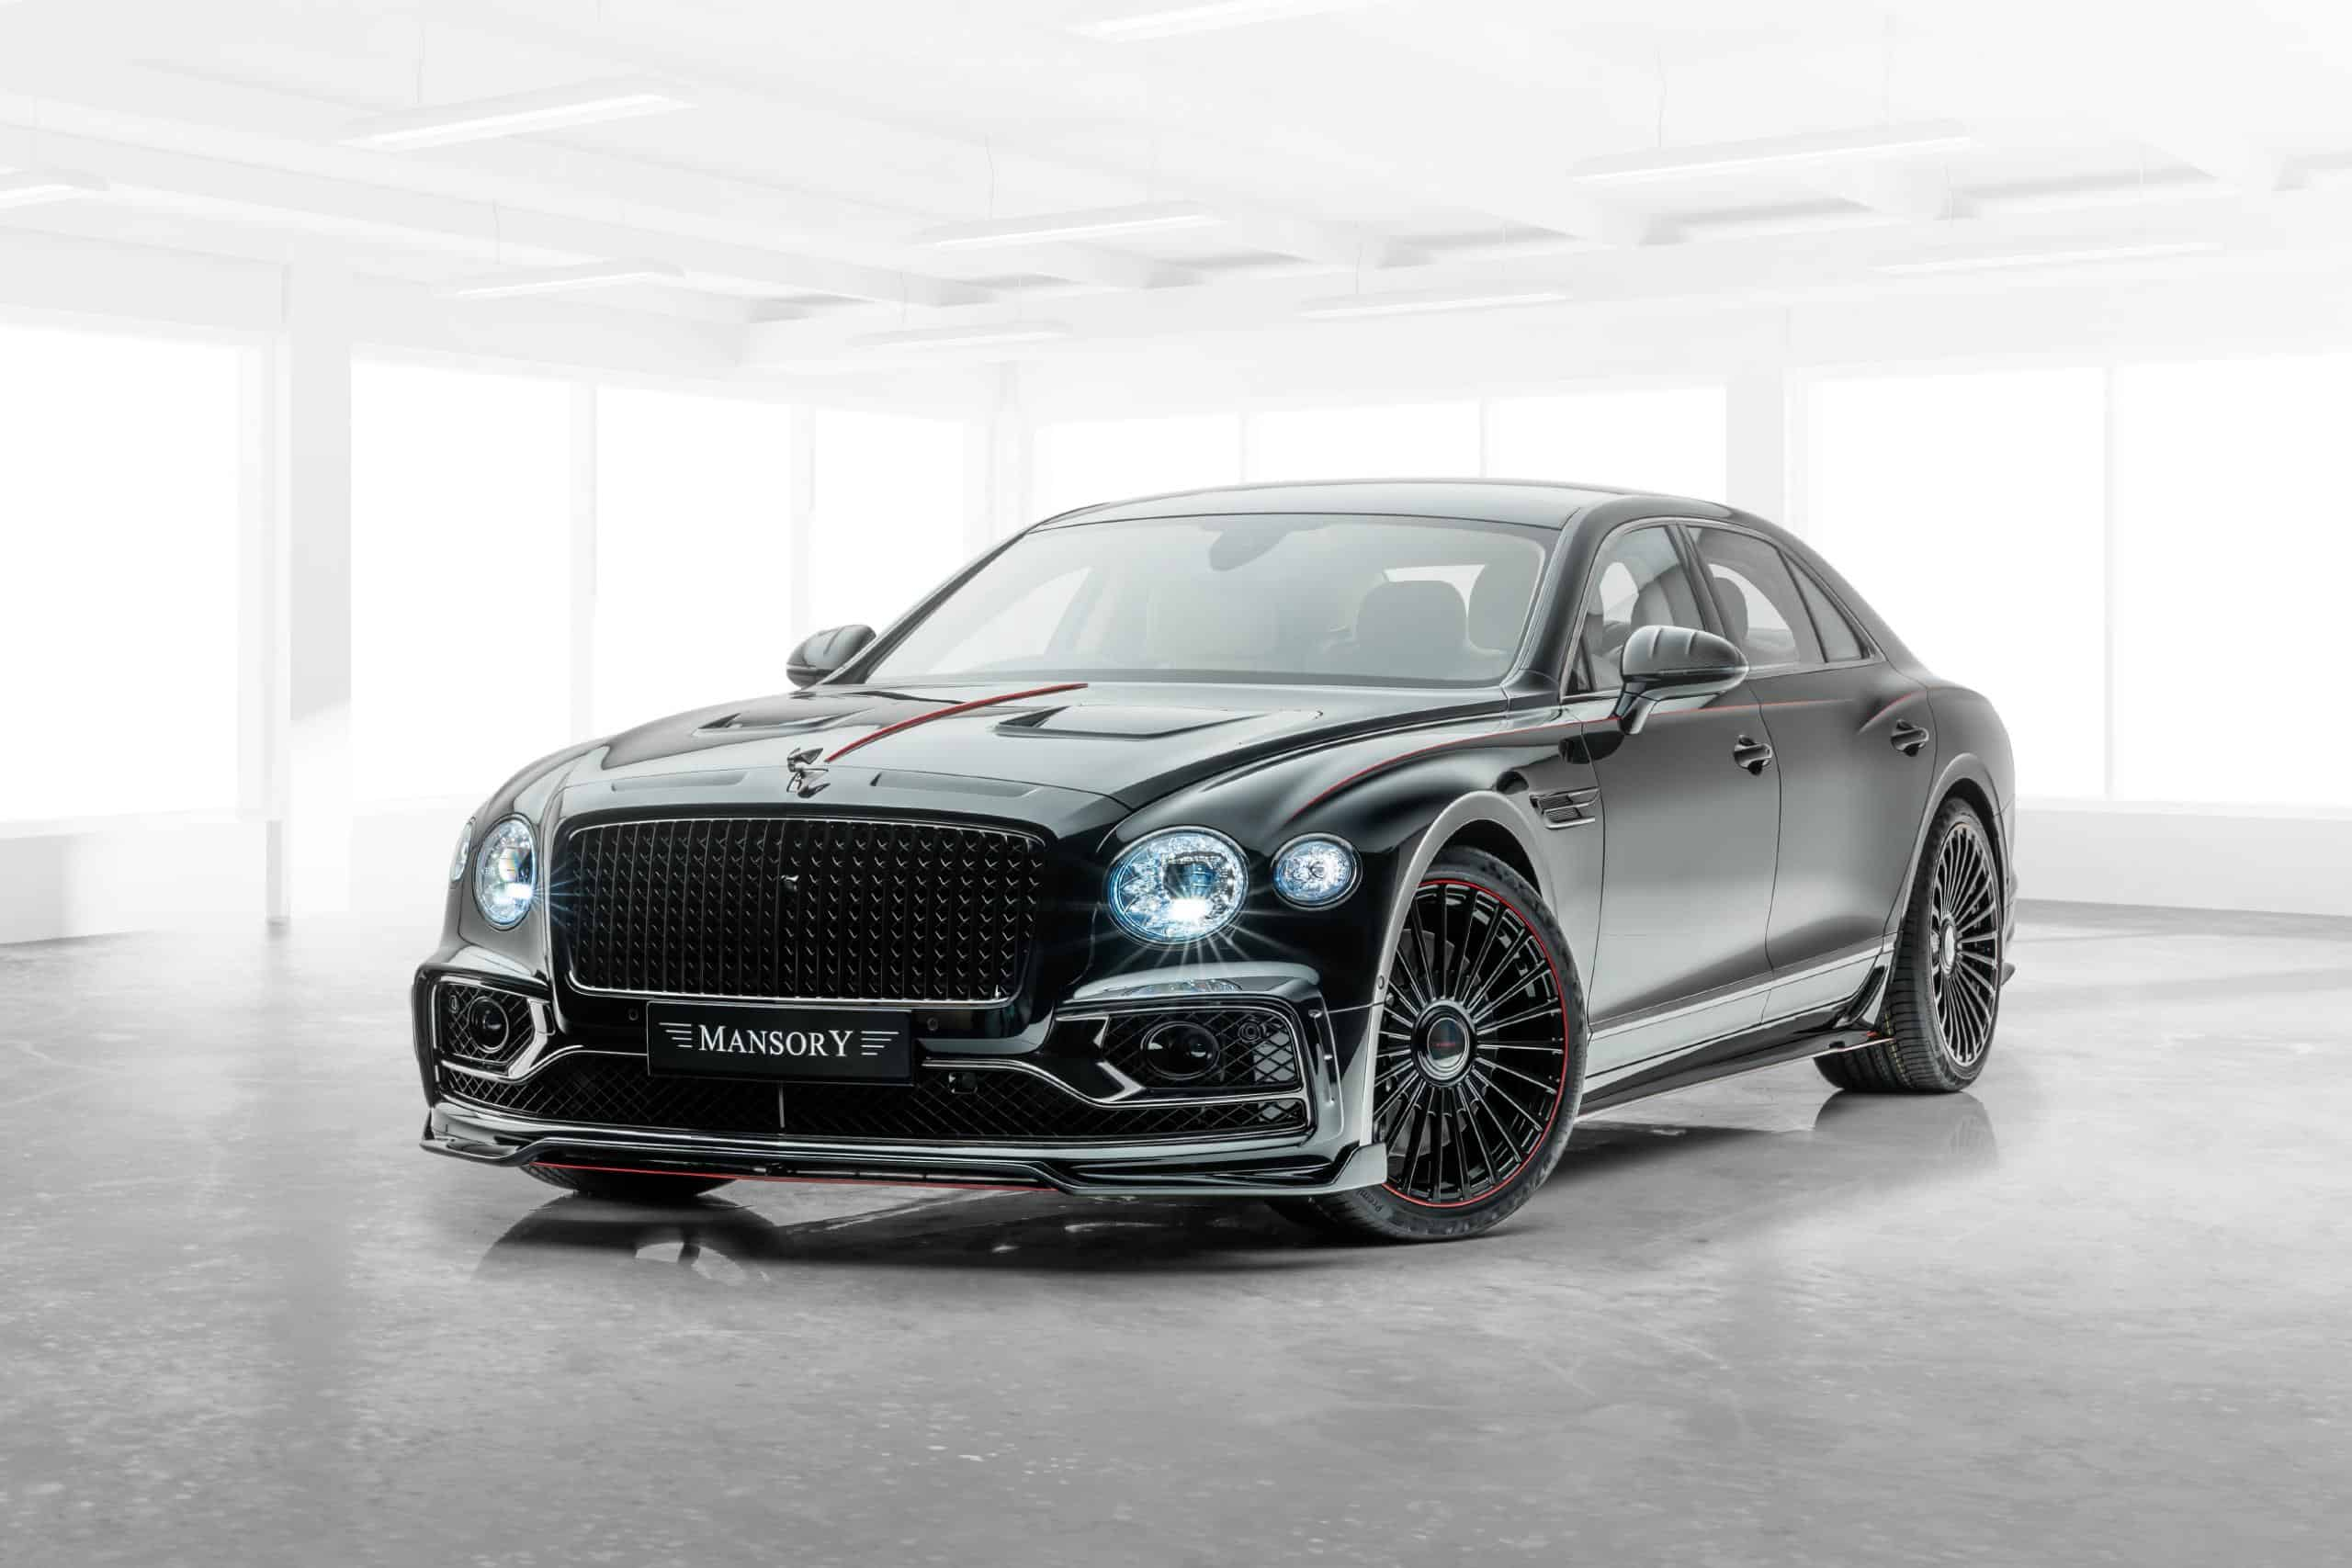 2020 Bentley Flying Spur Mansory